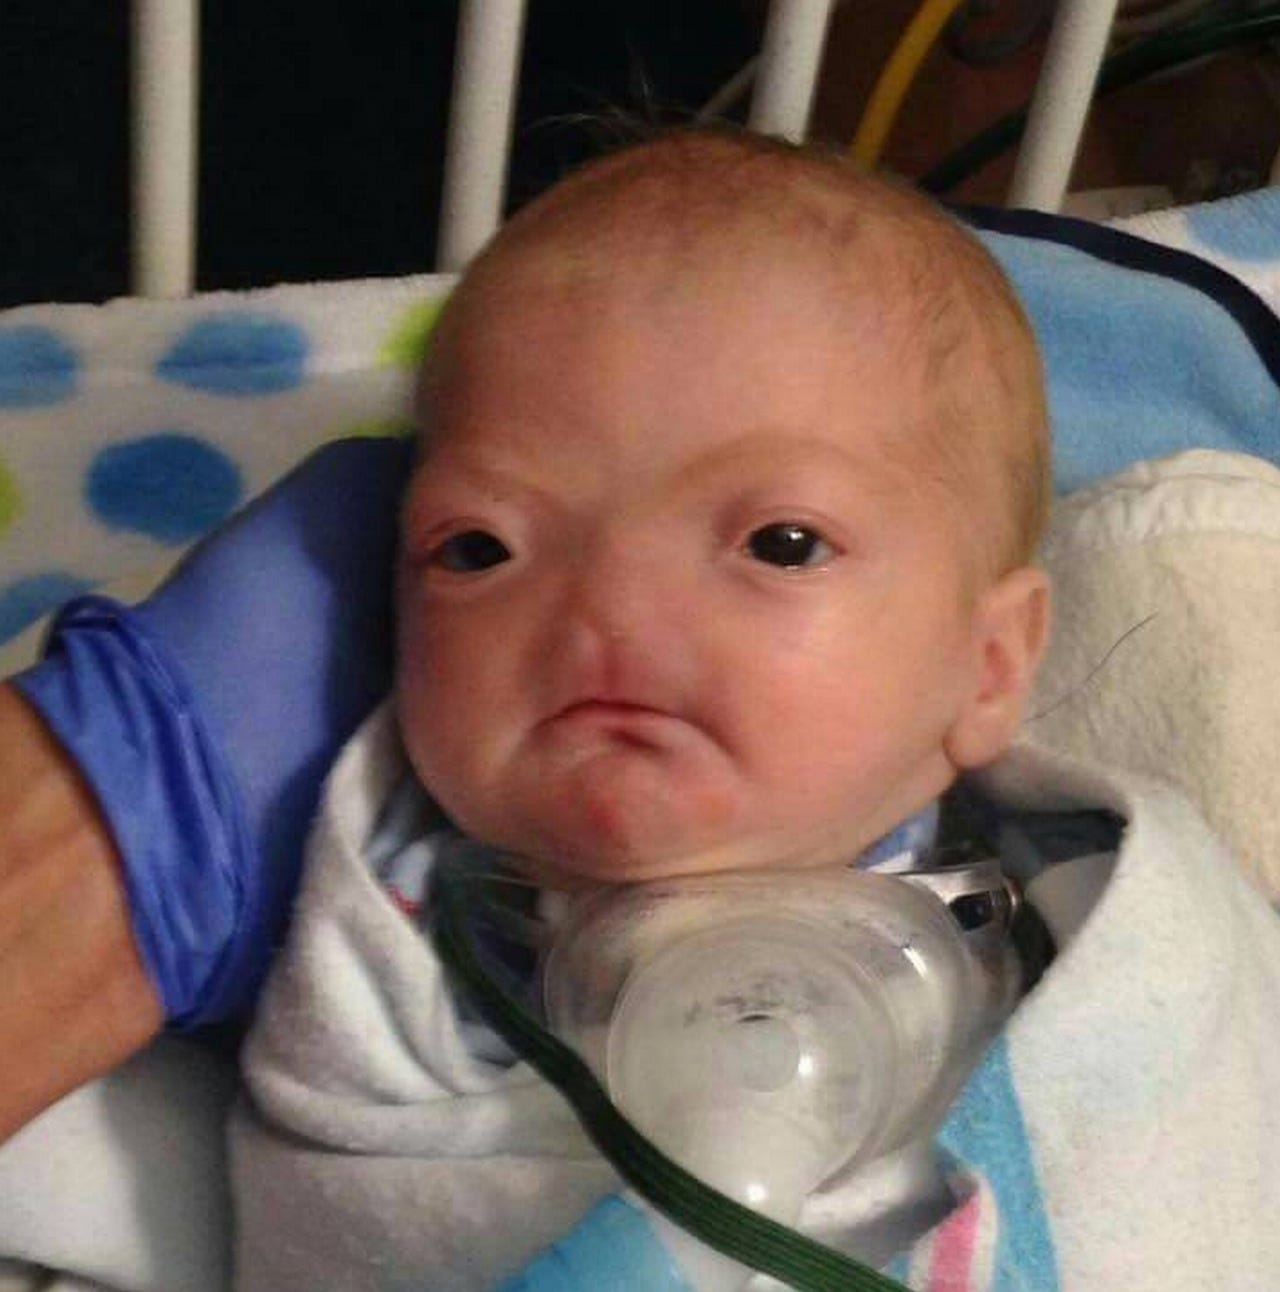 Baby has not facial expresion picture 296